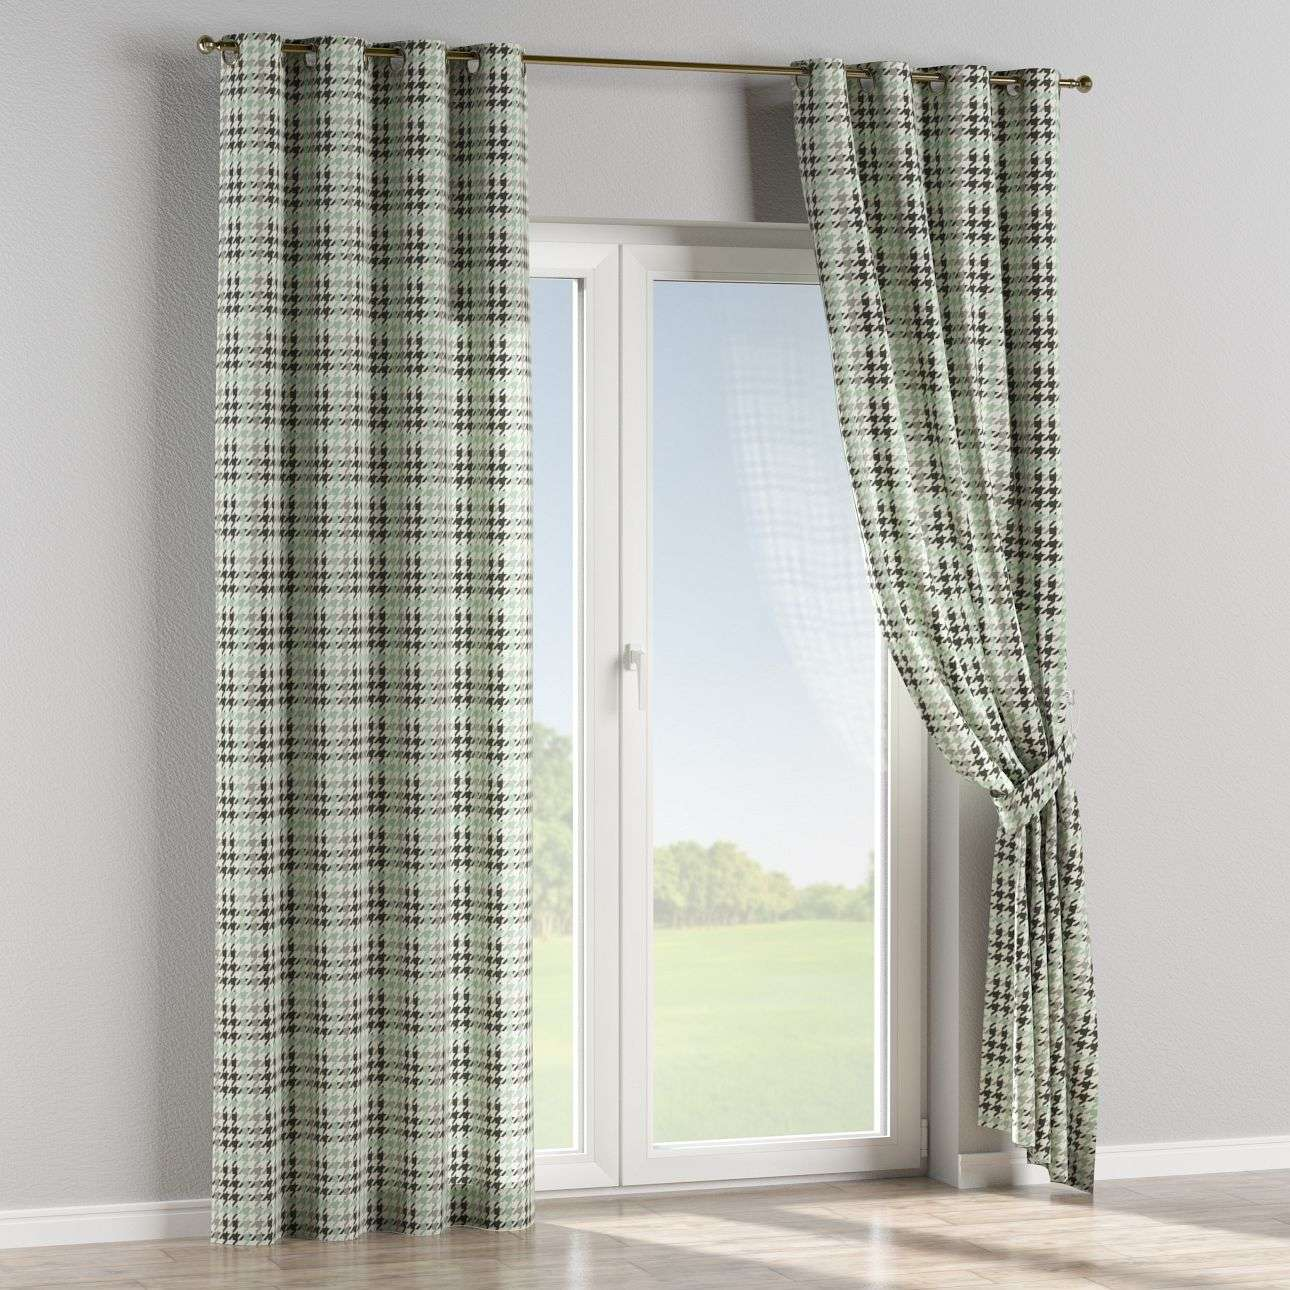 Eyelet curtains 130 x 260 cm (51 x 102 inch) in collection Brooklyn, fabric: 137-77